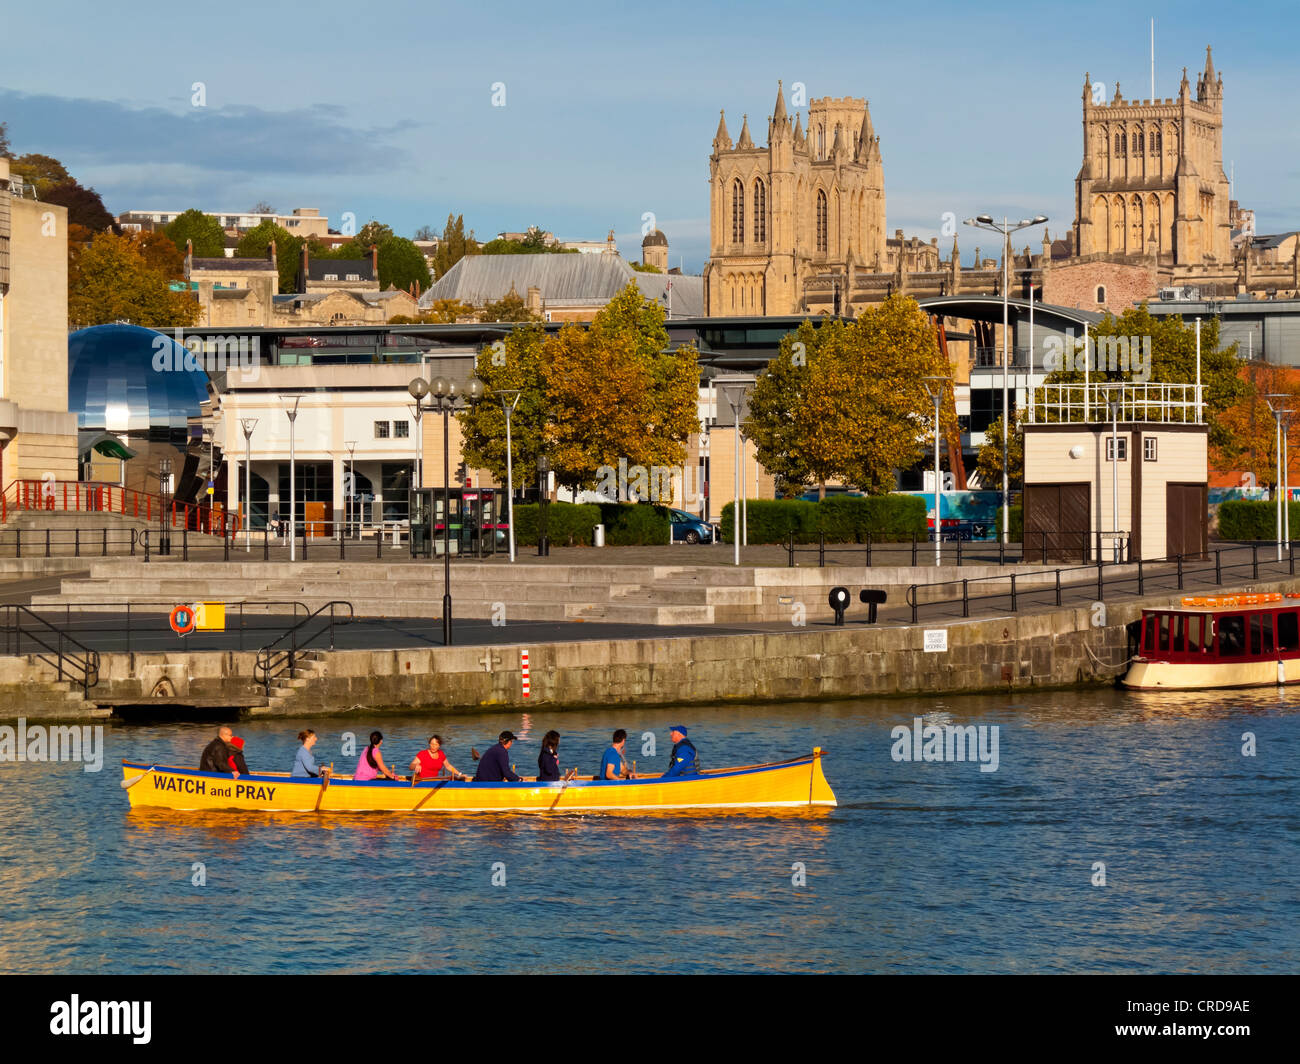 Rowing team in water at Bristol Docks and Harbour area in the city centre England UK which has been extensively - Stock Image